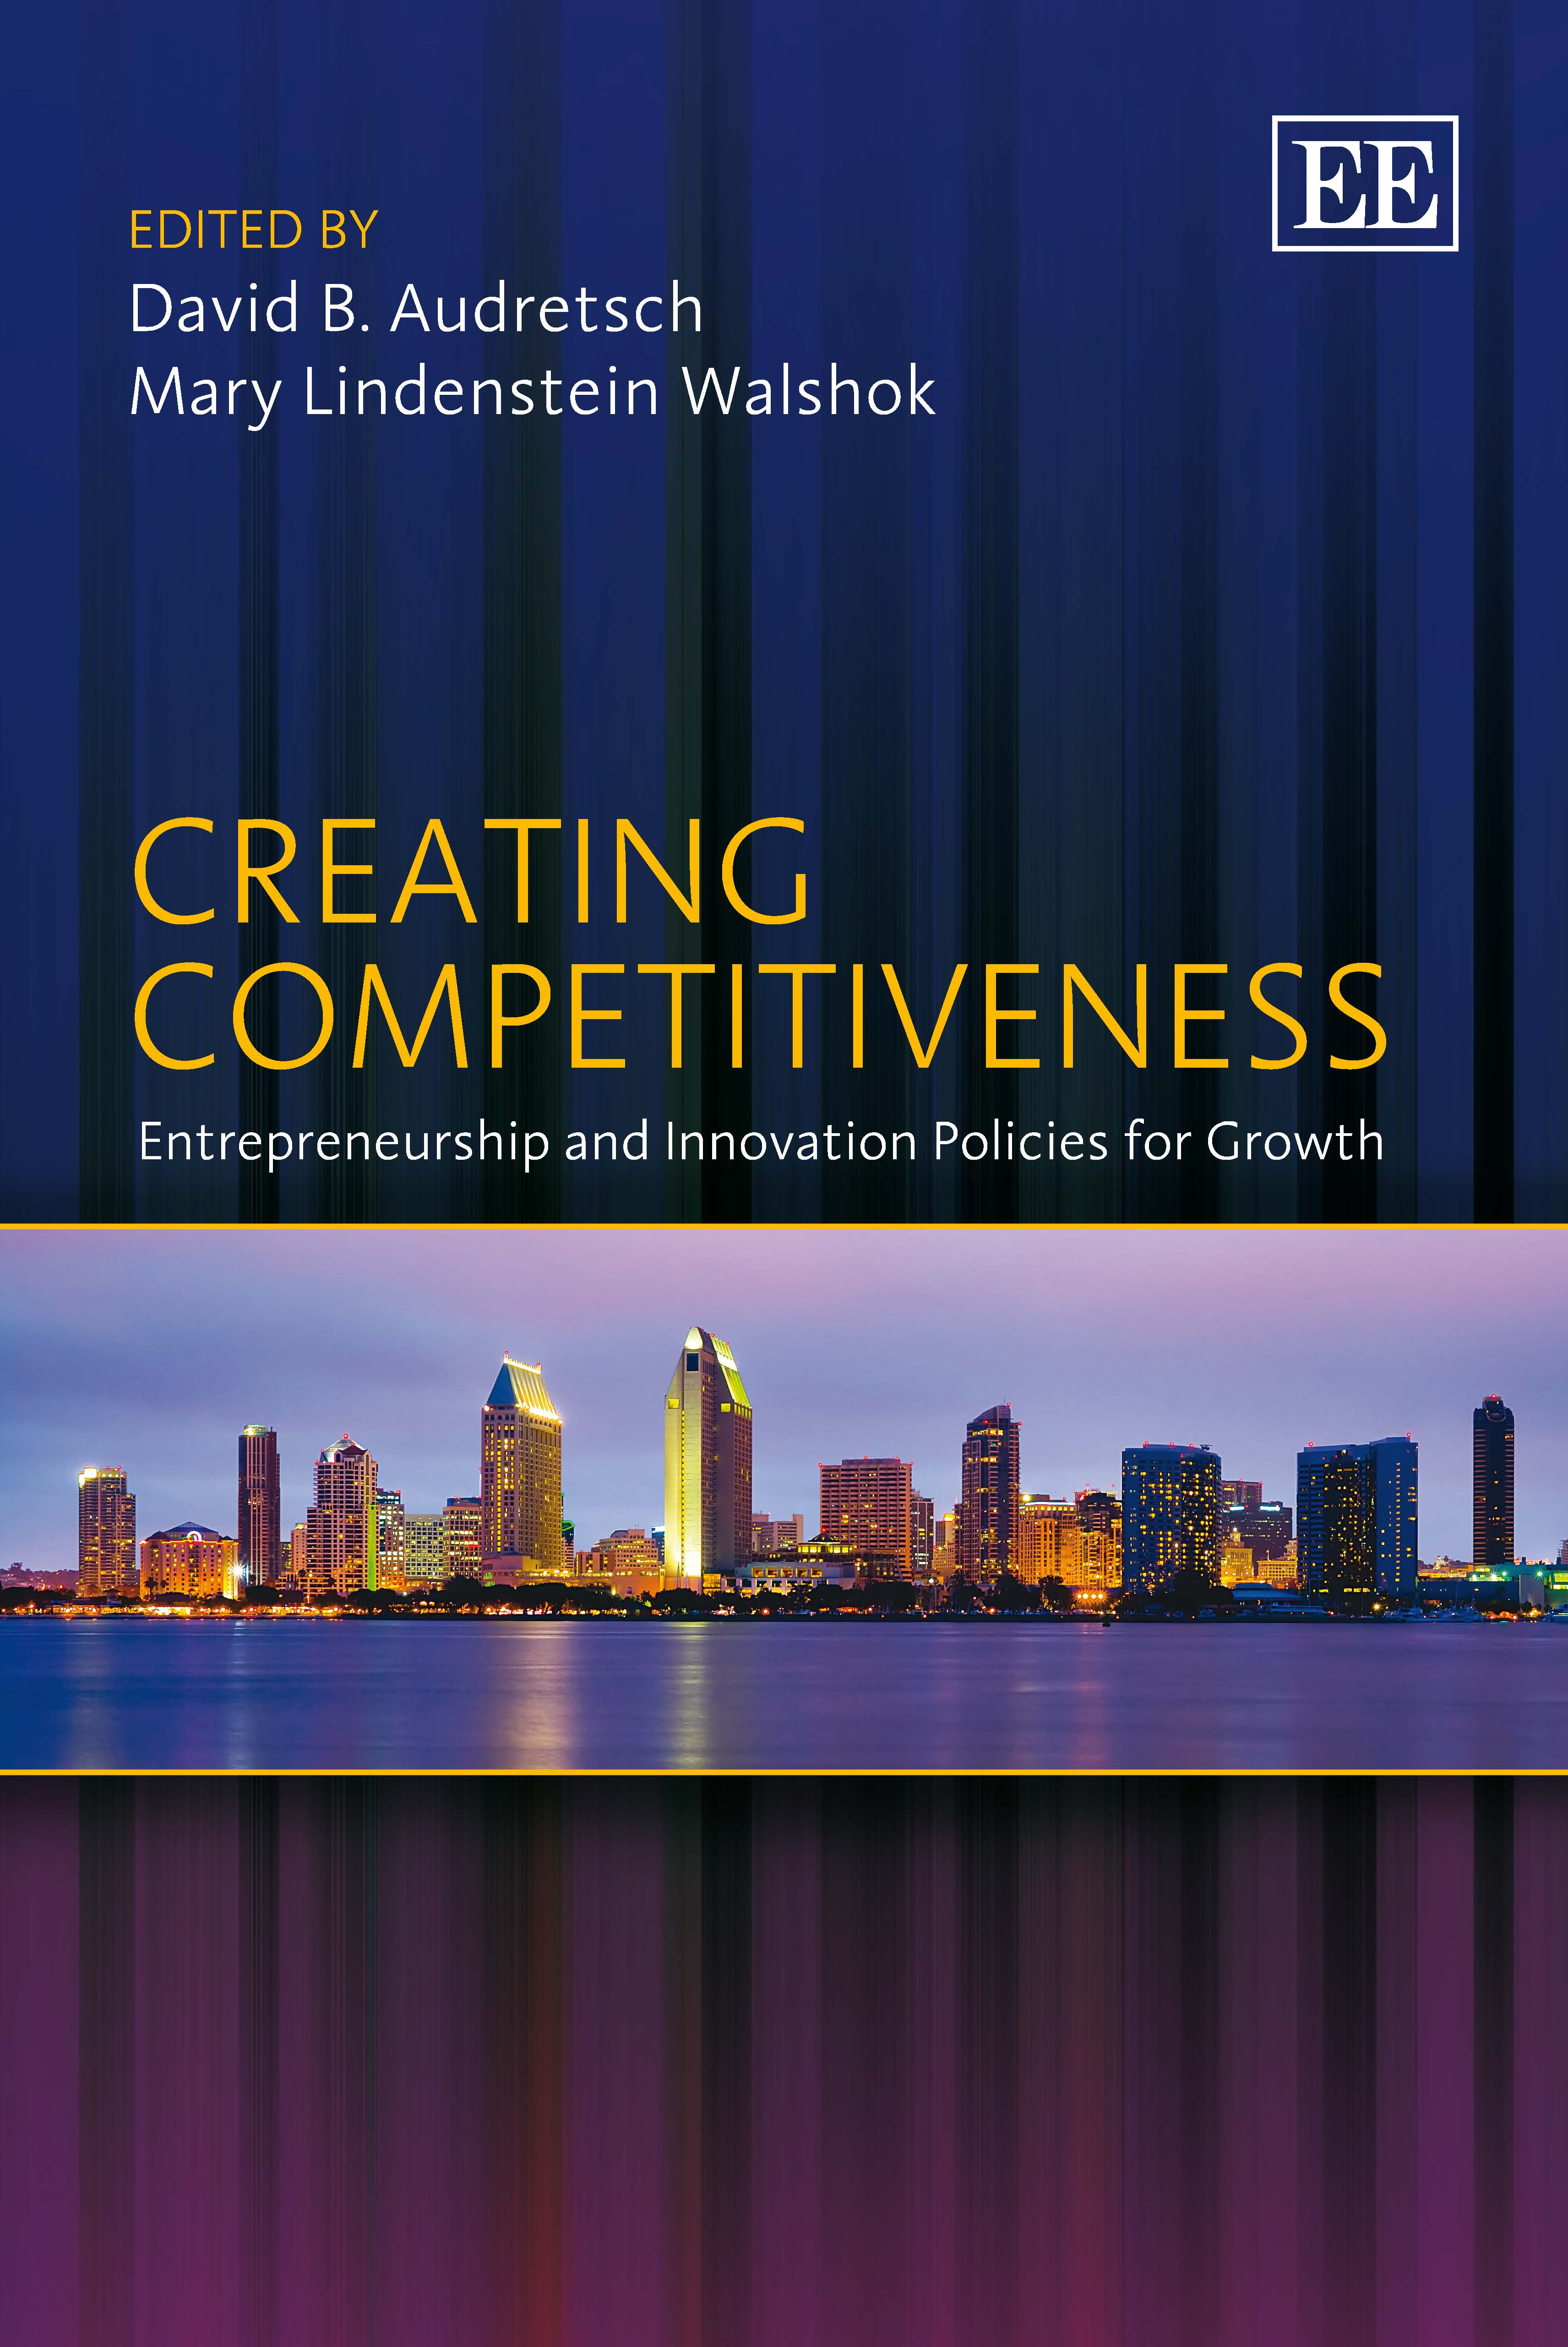 Download Ebook Creating Competitiveness by David B. Audretsch Pdf